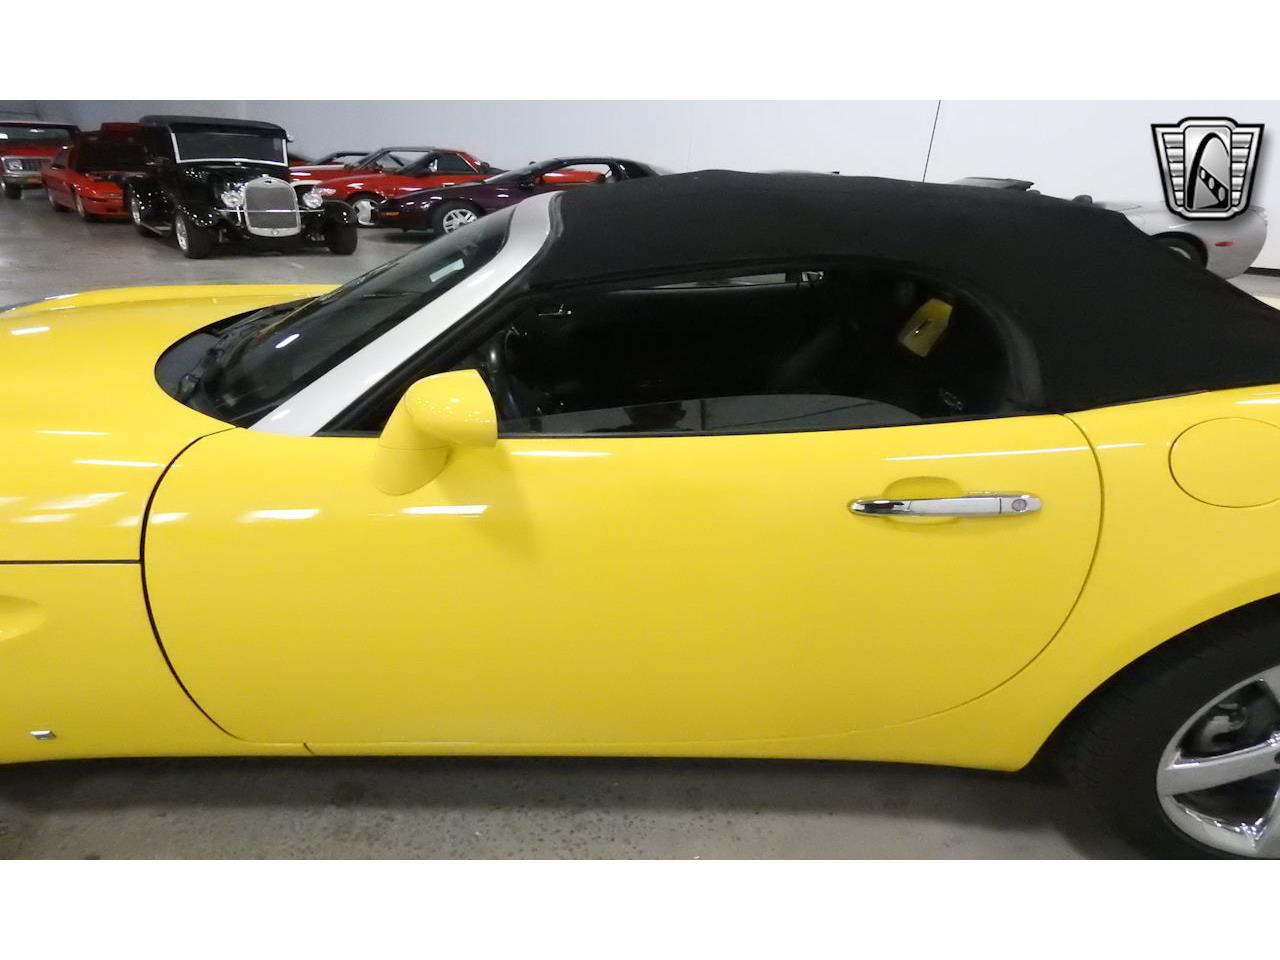 2007 Pontiac Solstice (CC-1415863) for sale in O'Fallon, Illinois